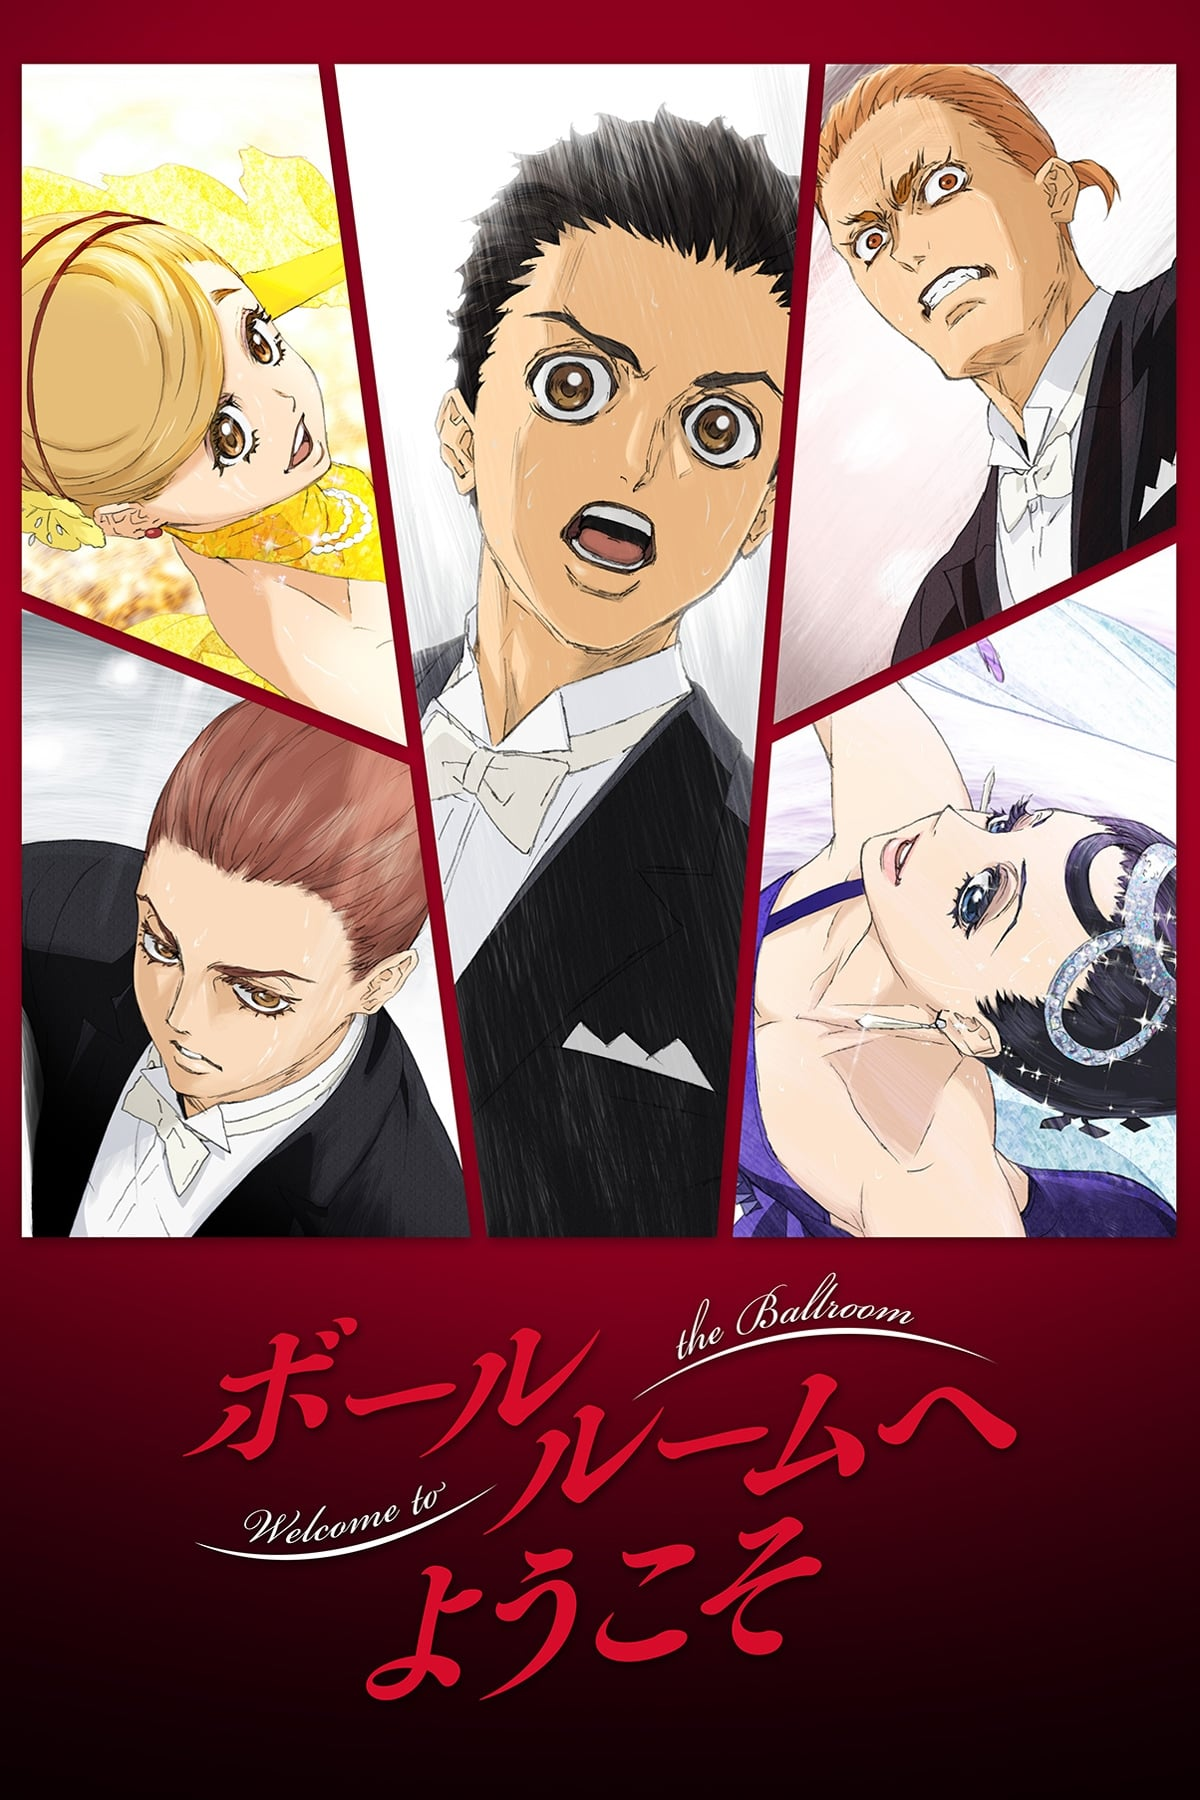 image for Welcome to the Ballroom